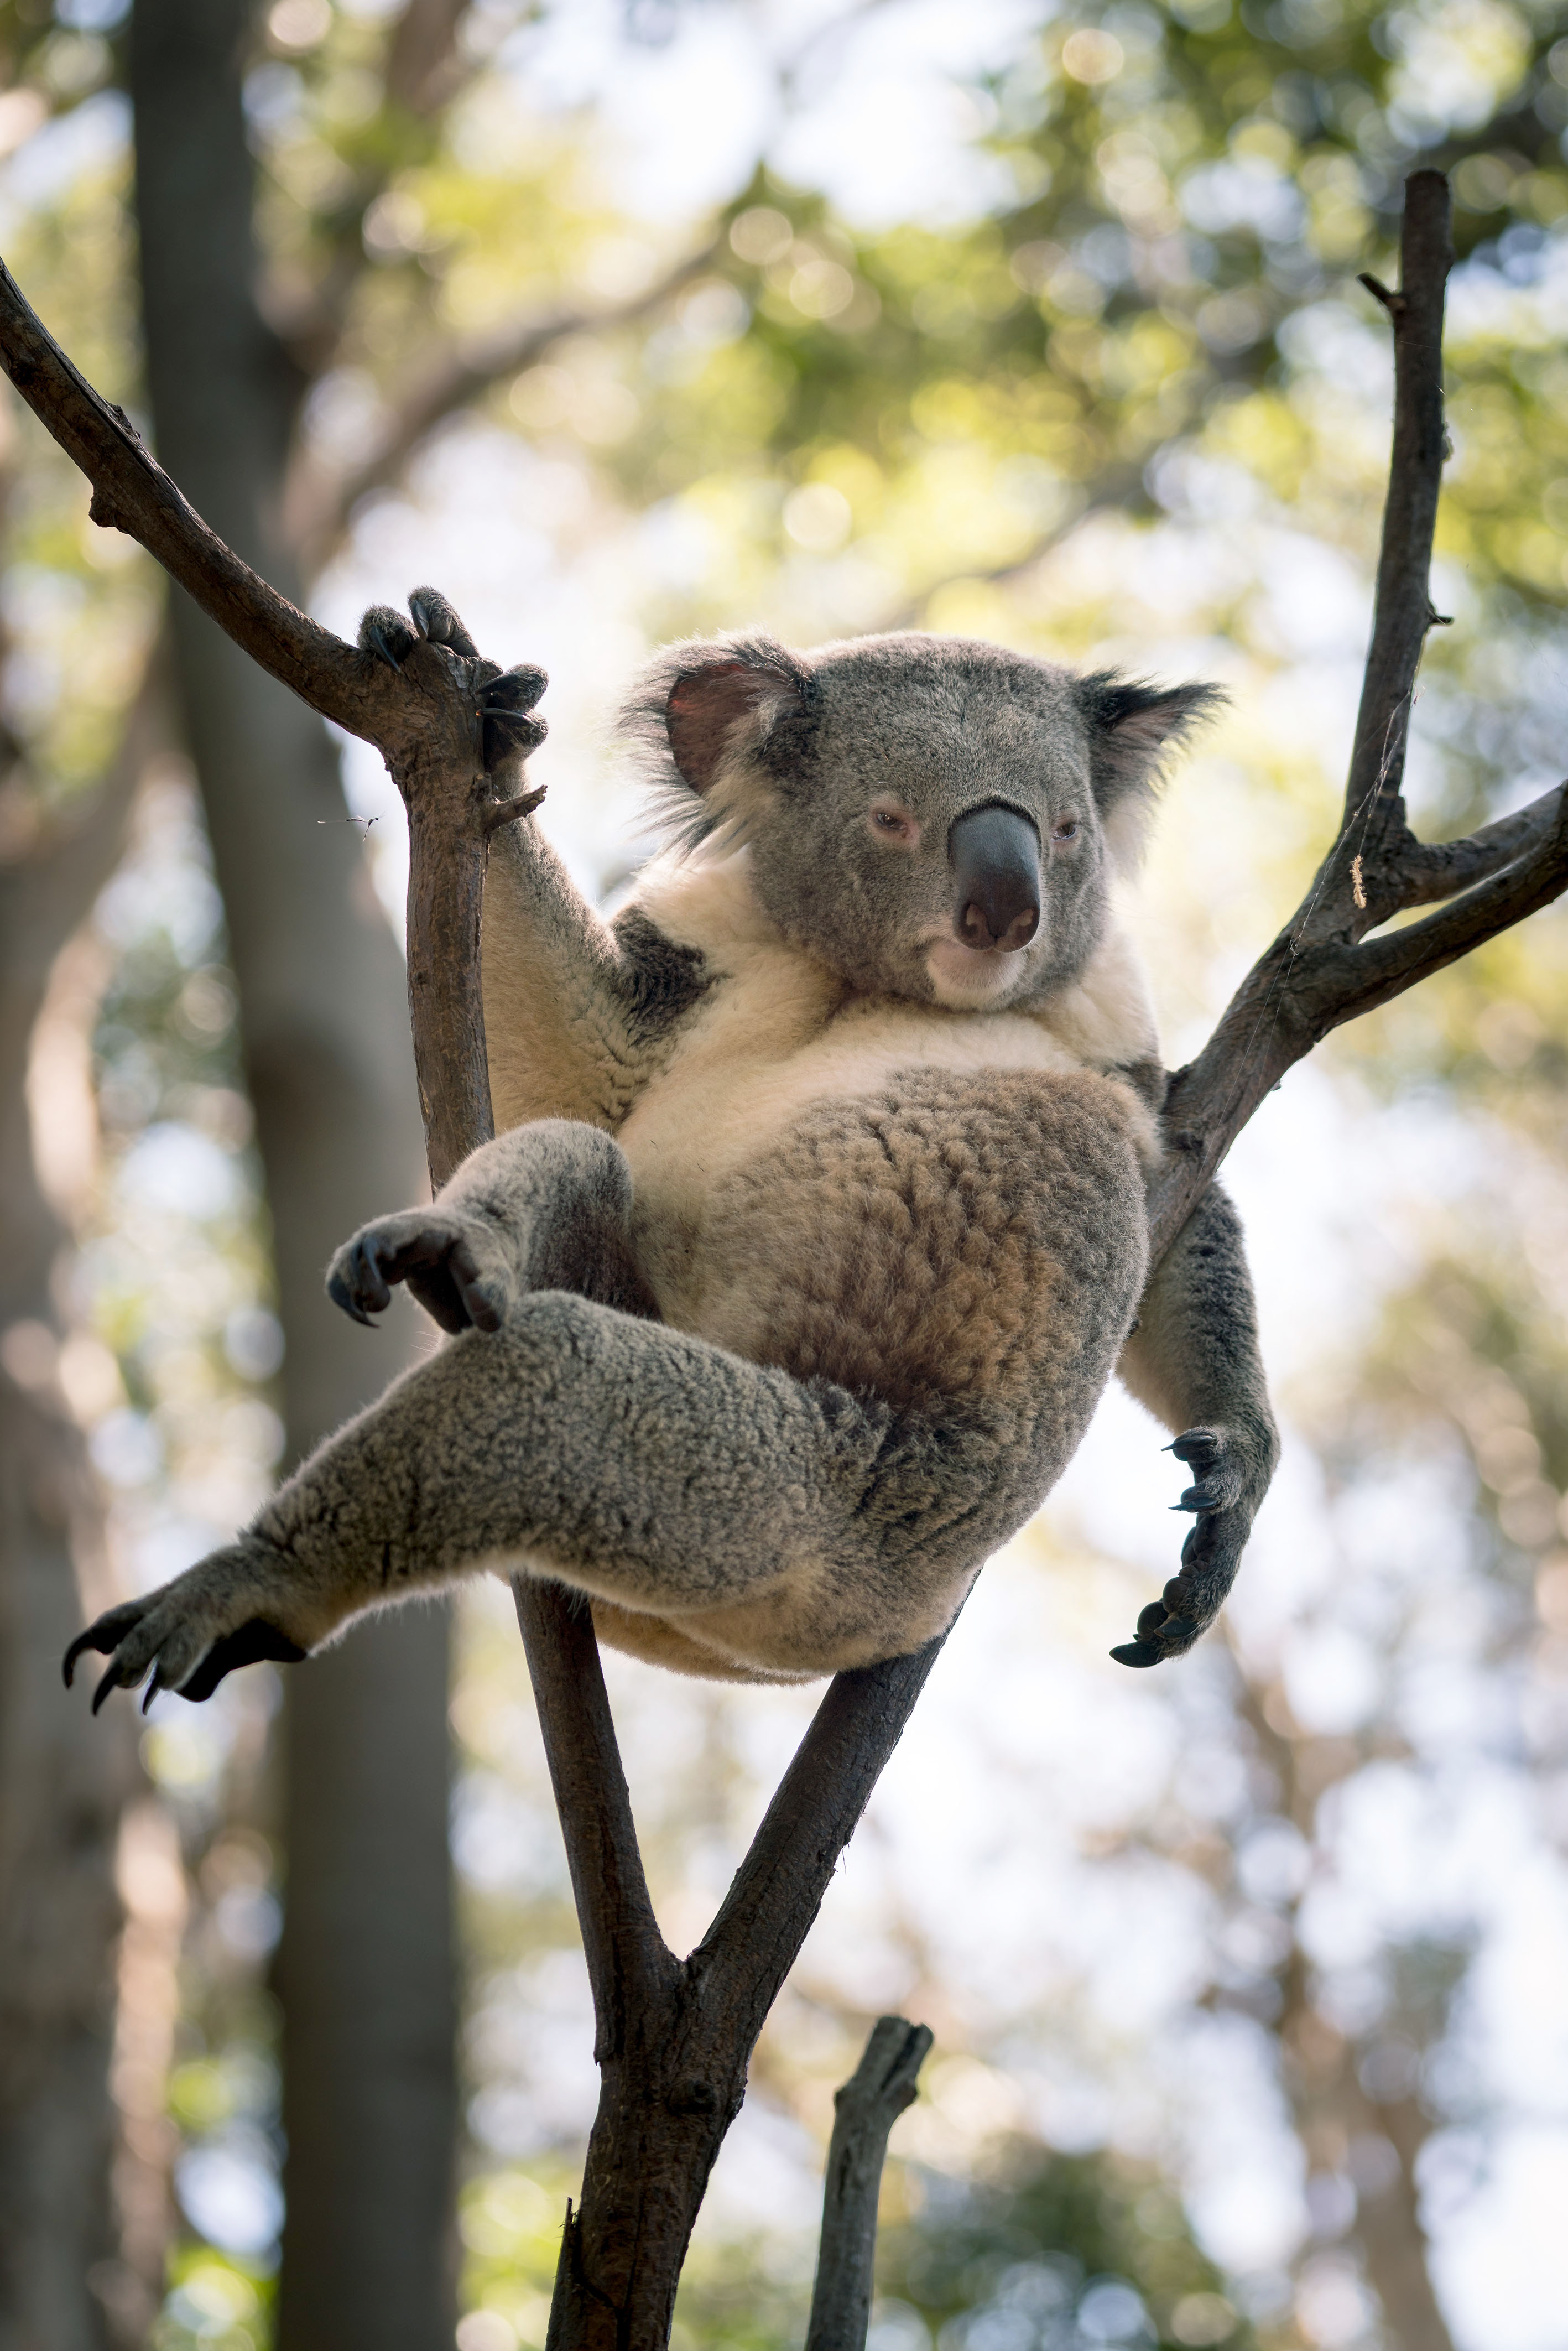 The koala was photographed relaxing in a tree. Credit: Caters